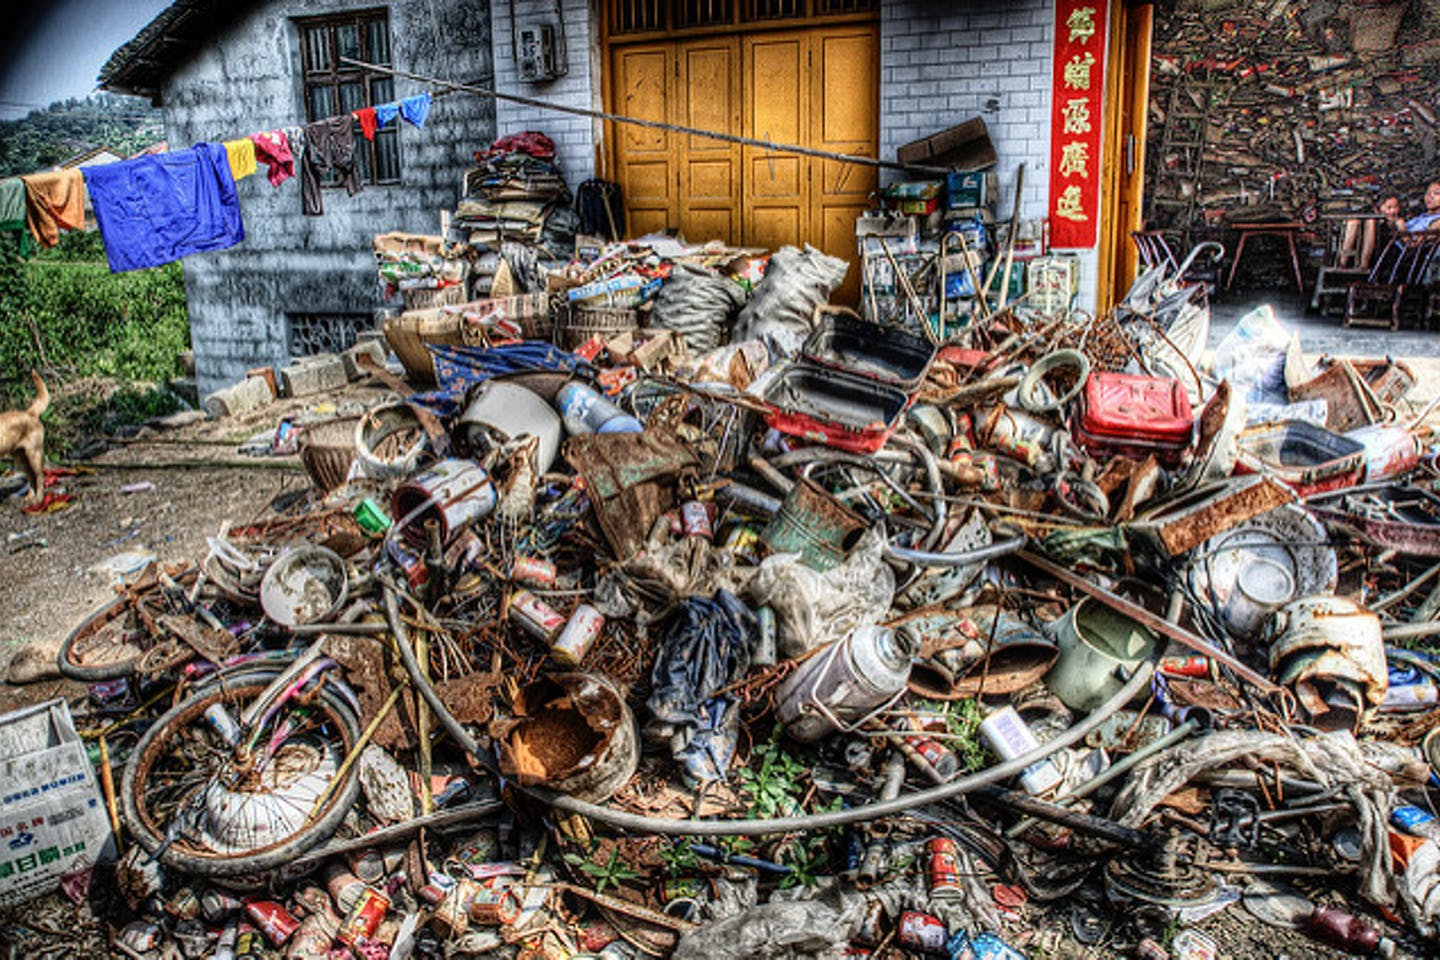 informal trash collection and recycling in China